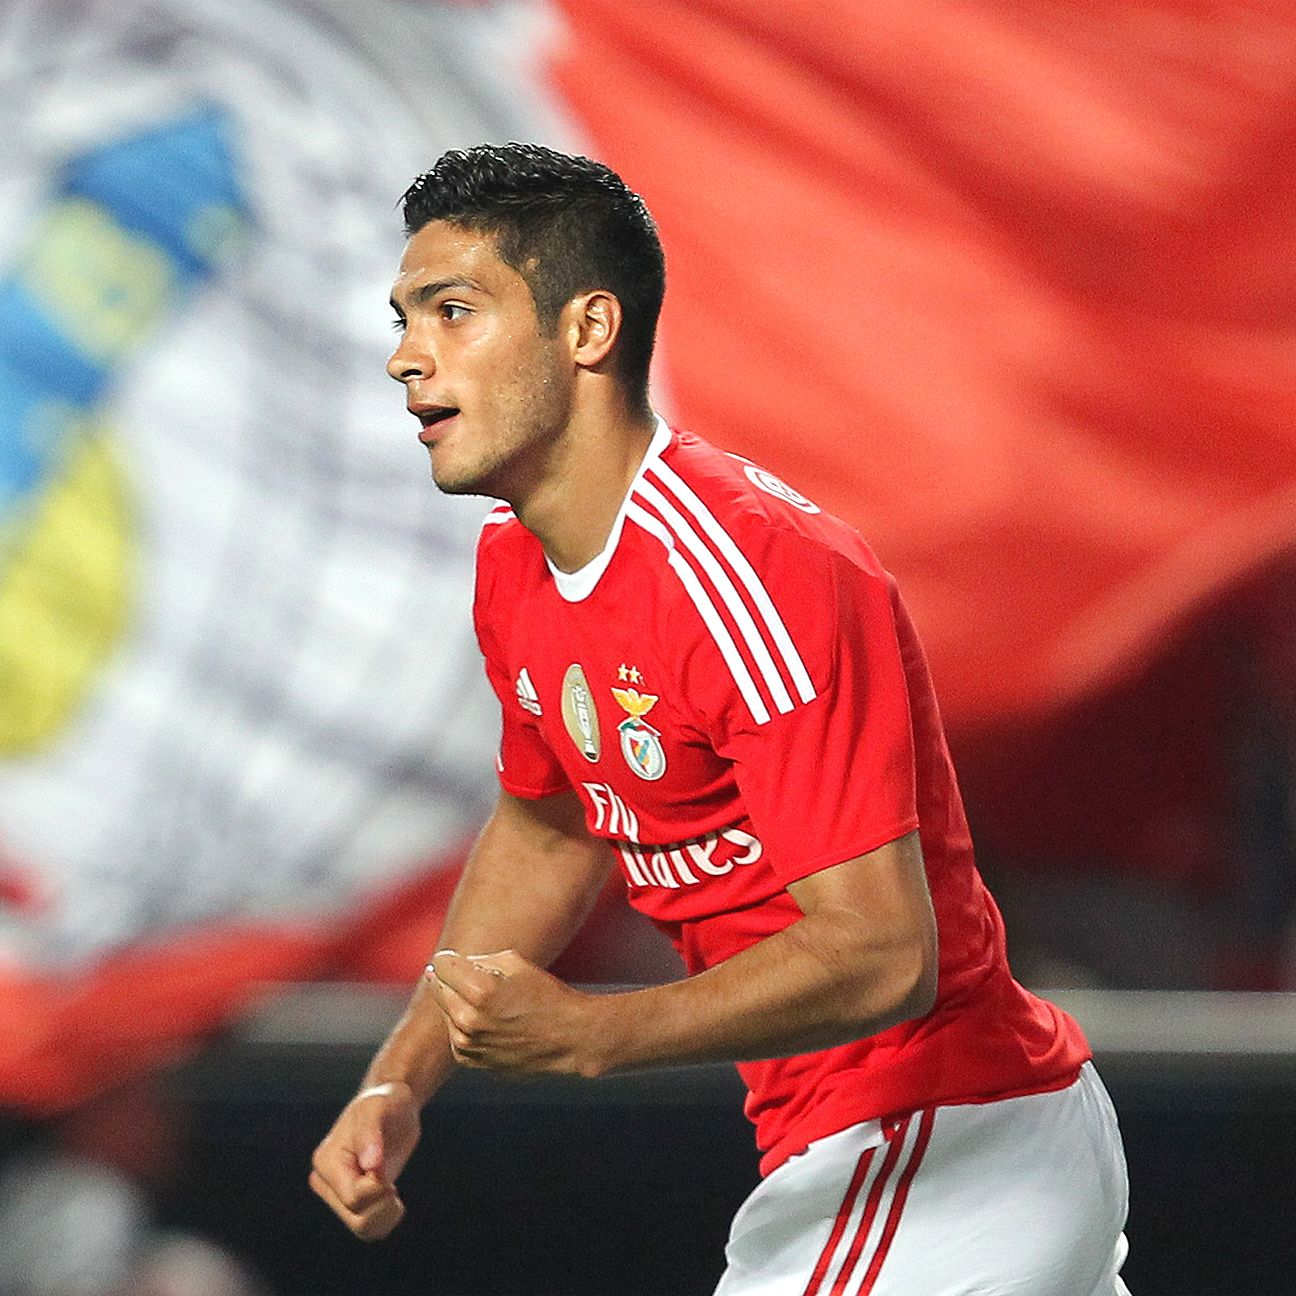 Raul Jimenez will go up against Mexico teammates Hector Herrera, Miguel Layun and Jesus Corona when Benfica head north to face rivals Porto.